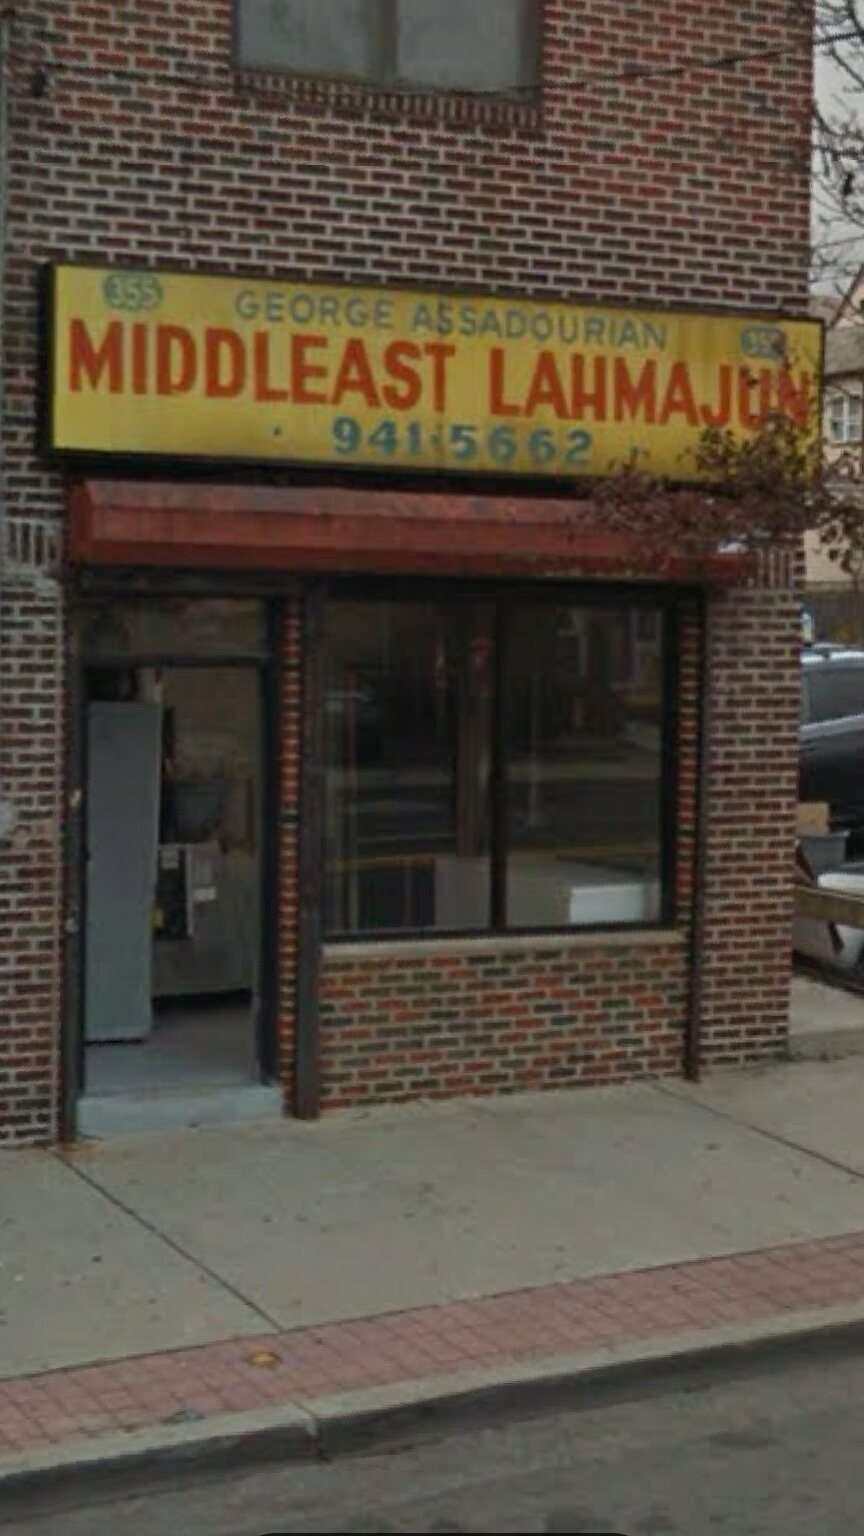 Middle East Lahmajun - bakery  | Photo 2 of 2 | Address: 355 Anderson Ave, Fairview, NJ 07022, USA | Phone: (201) 941-5662